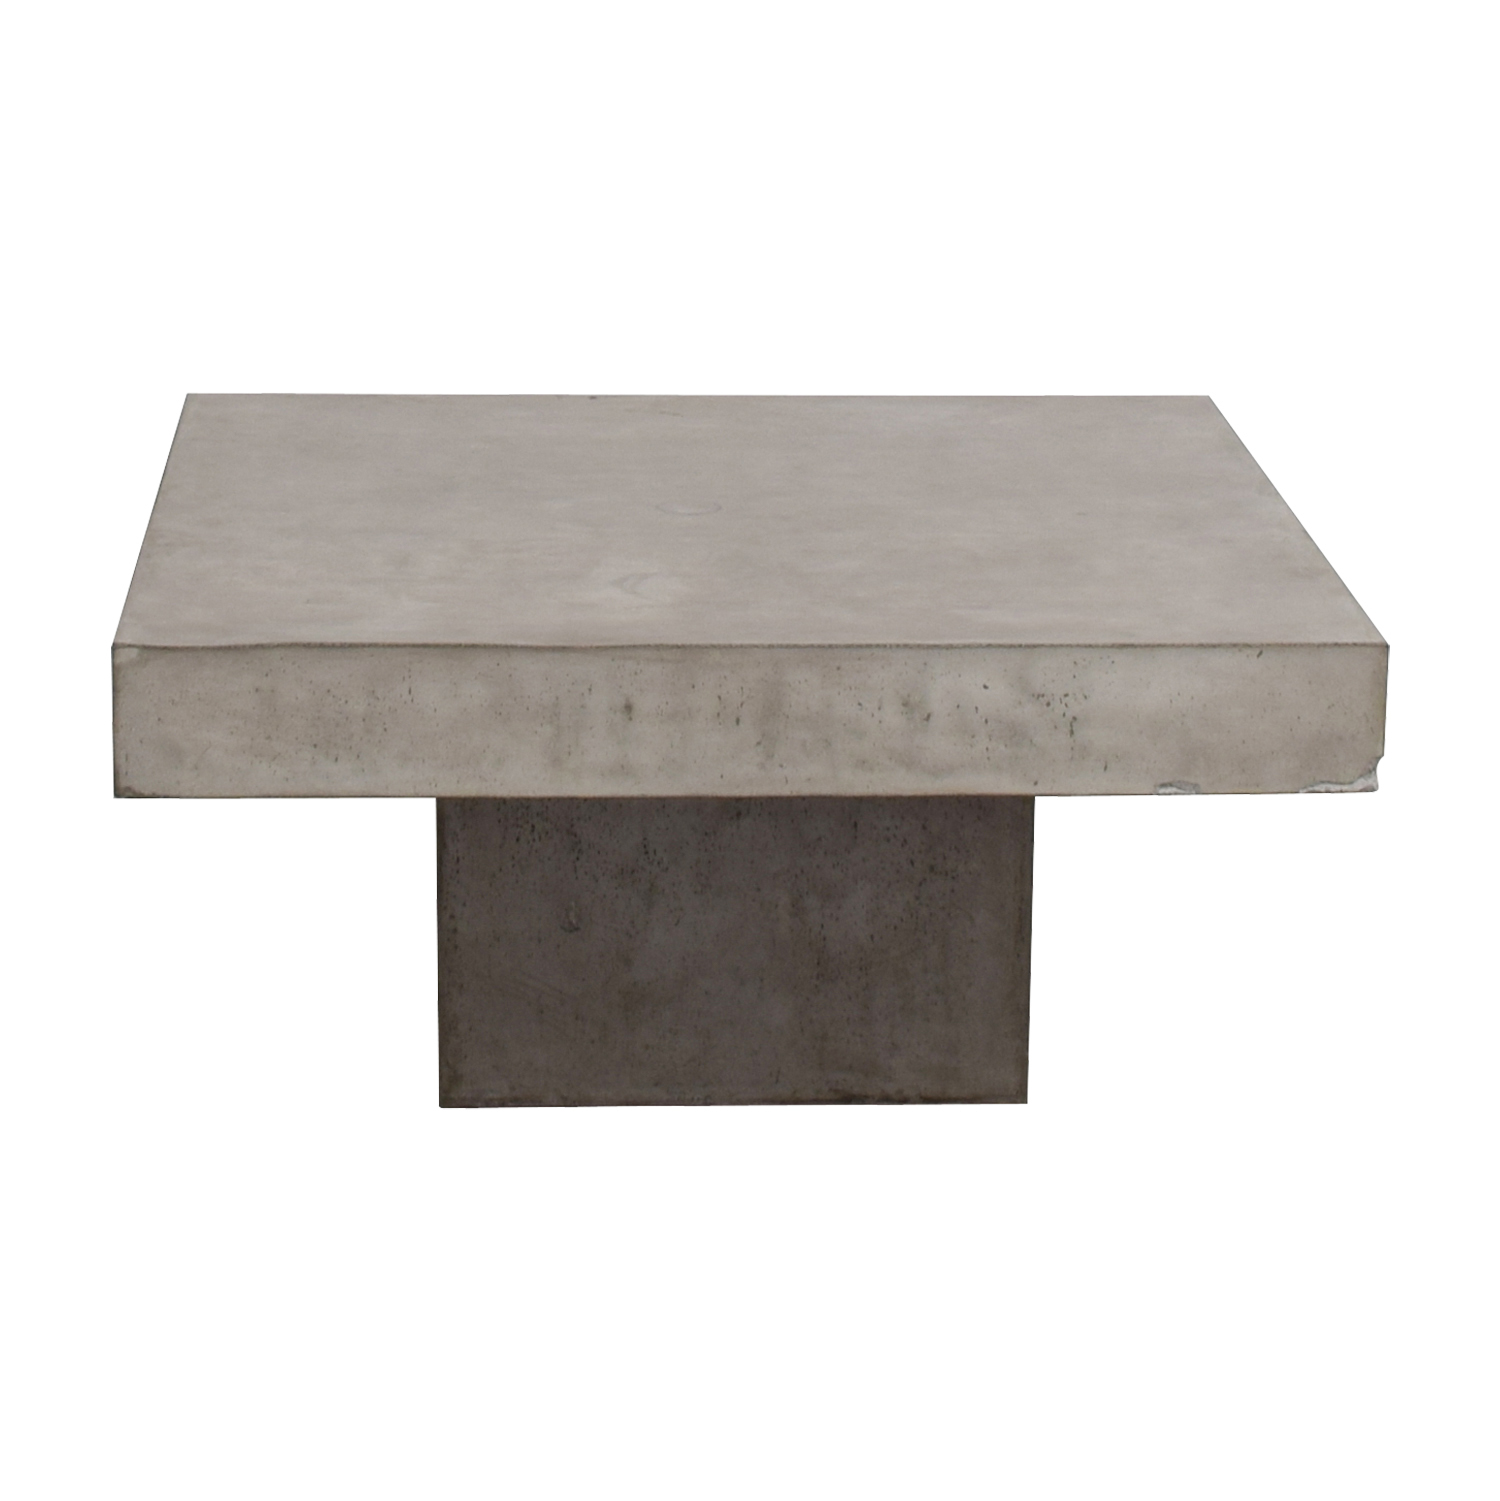 OFF CB CB Concrete Coffee Table Tables - Cb2 cement table